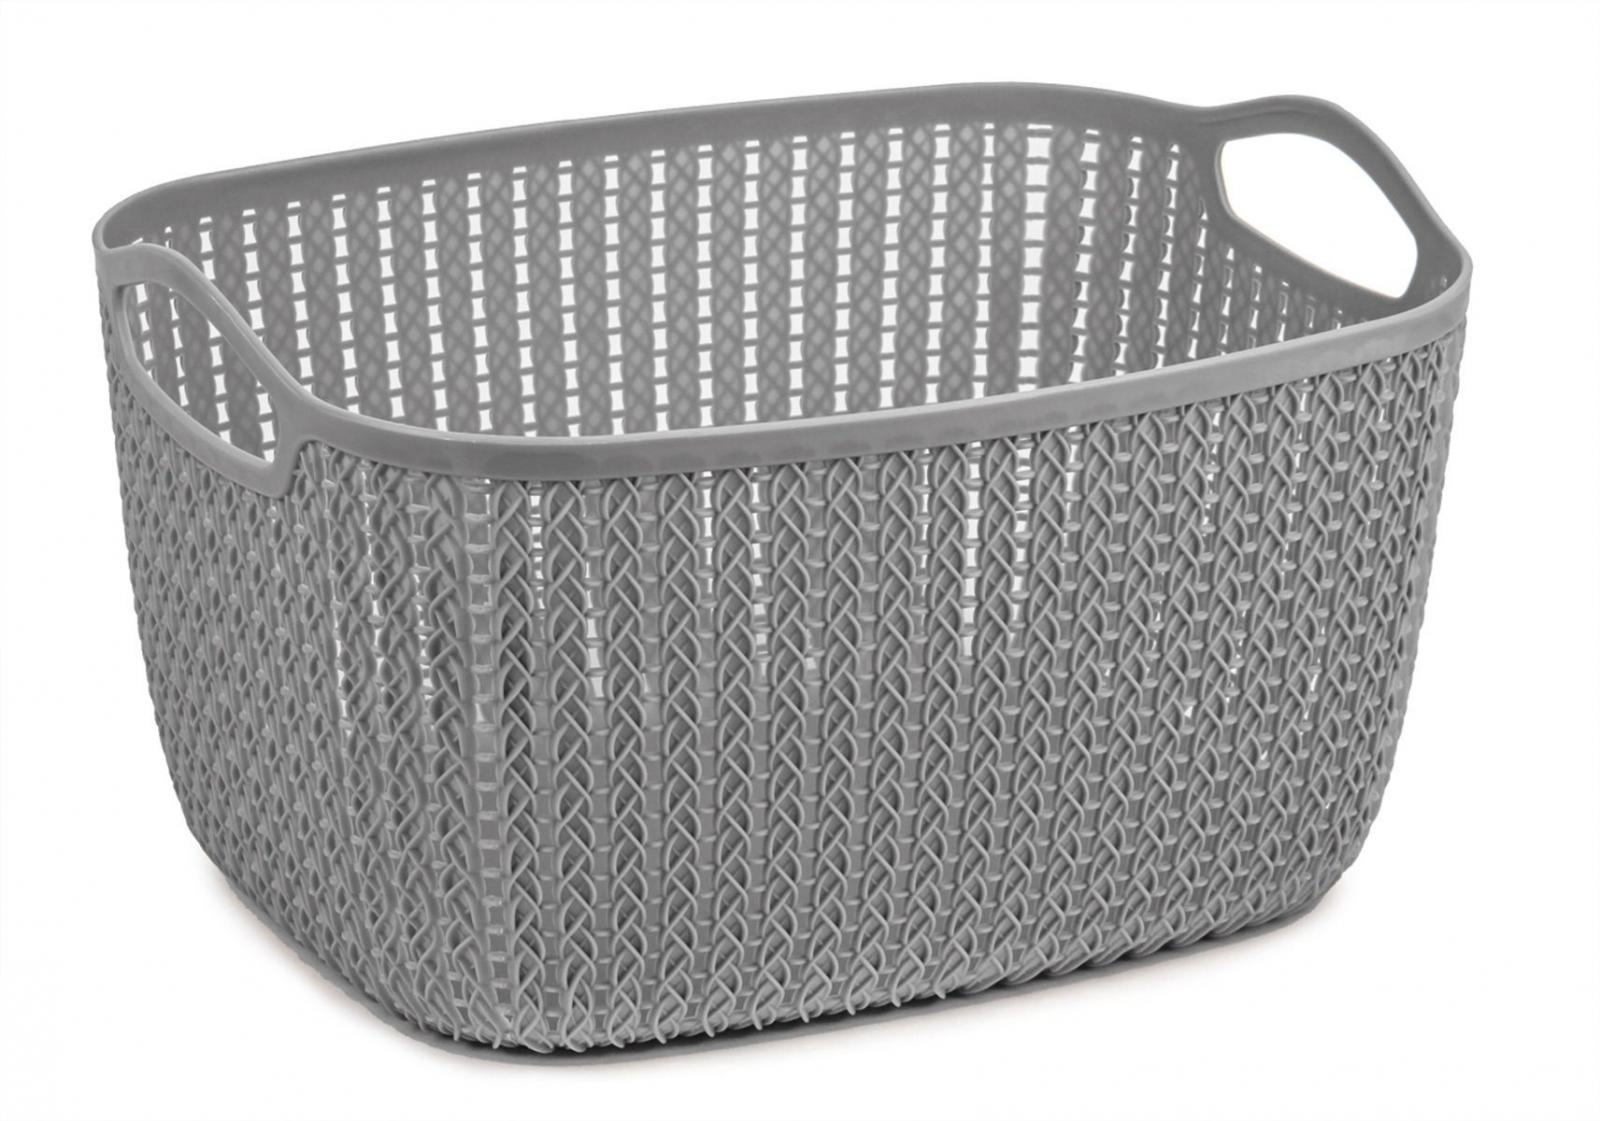 9 Litre Lace Storage Basket - Grey – Now Only £2.00